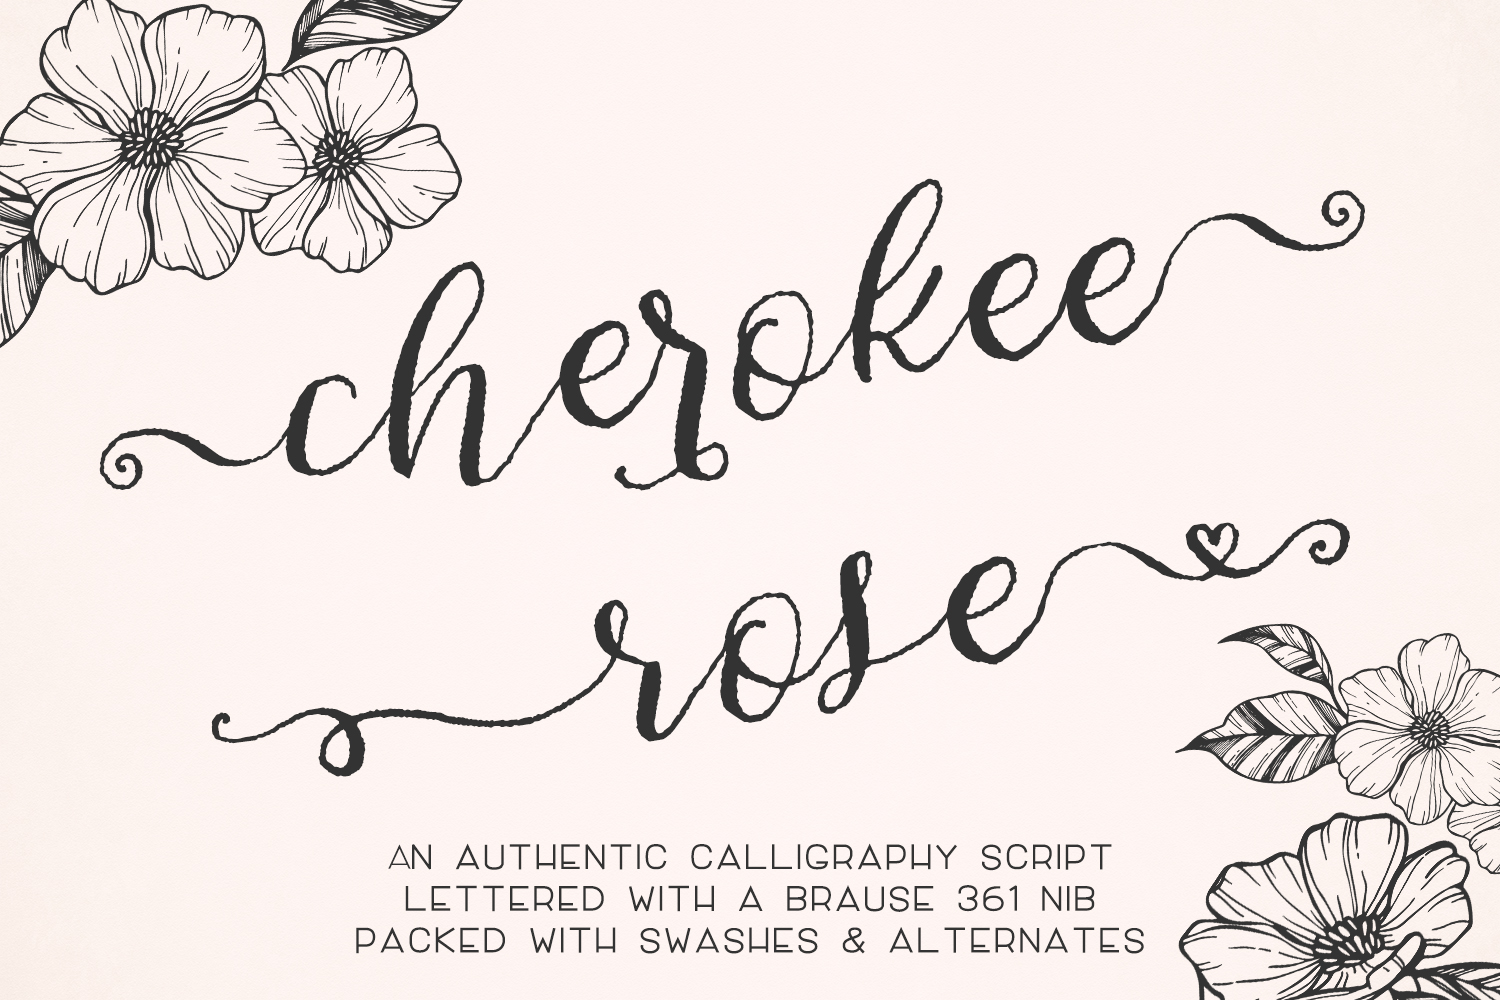 Calligraphy Fonts: Cherokee Rose Calligraphy Script By Bec